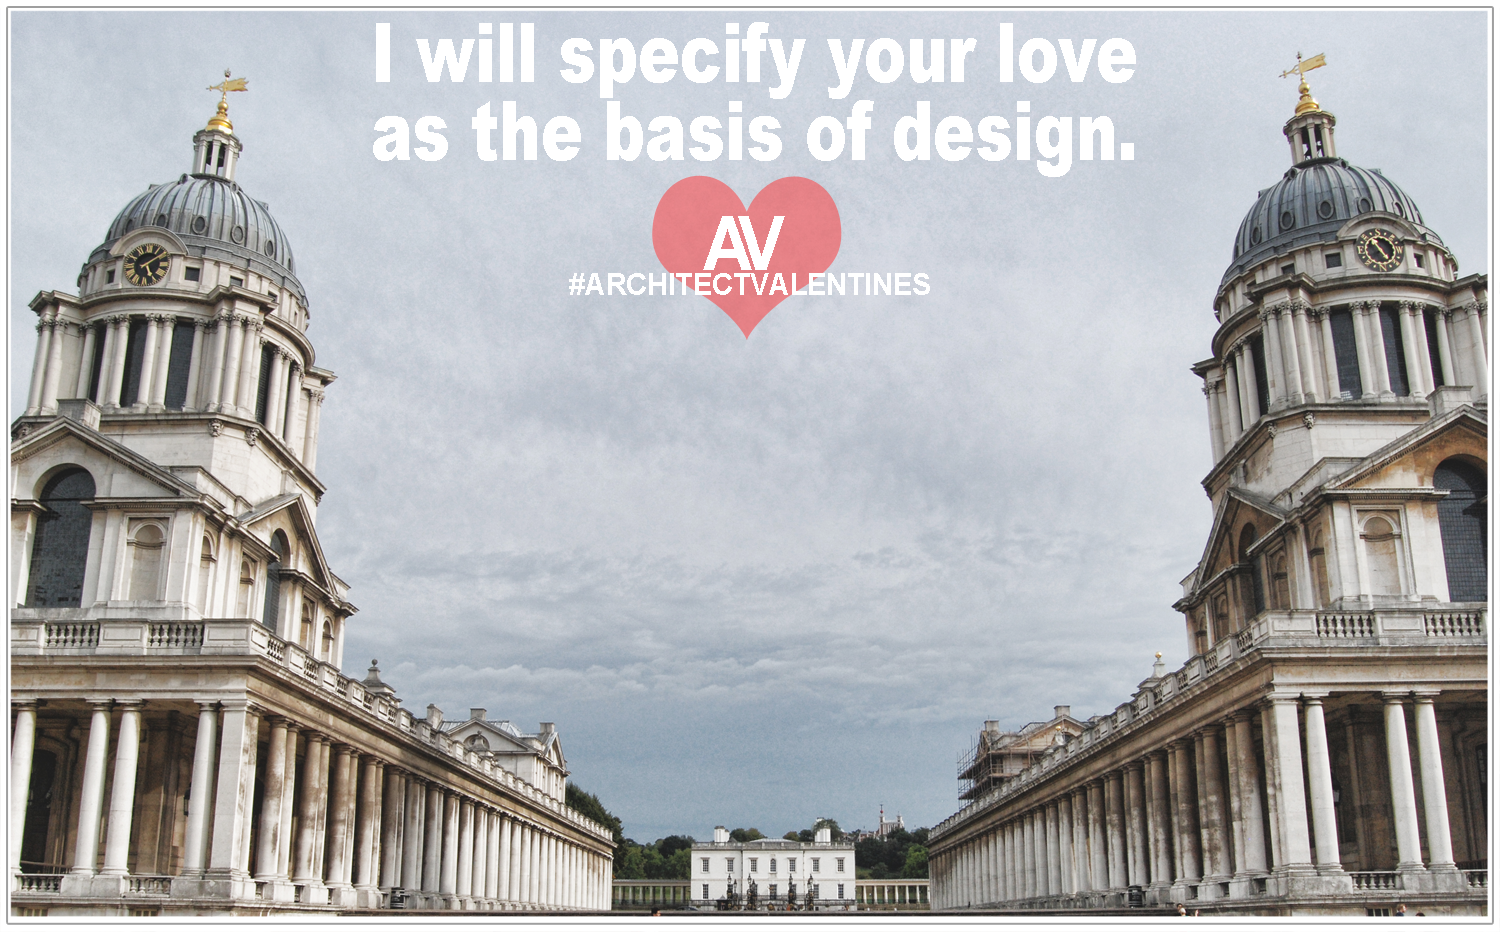 architect valentines 2014 coffee with an architect. Black Bedroom Furniture Sets. Home Design Ideas